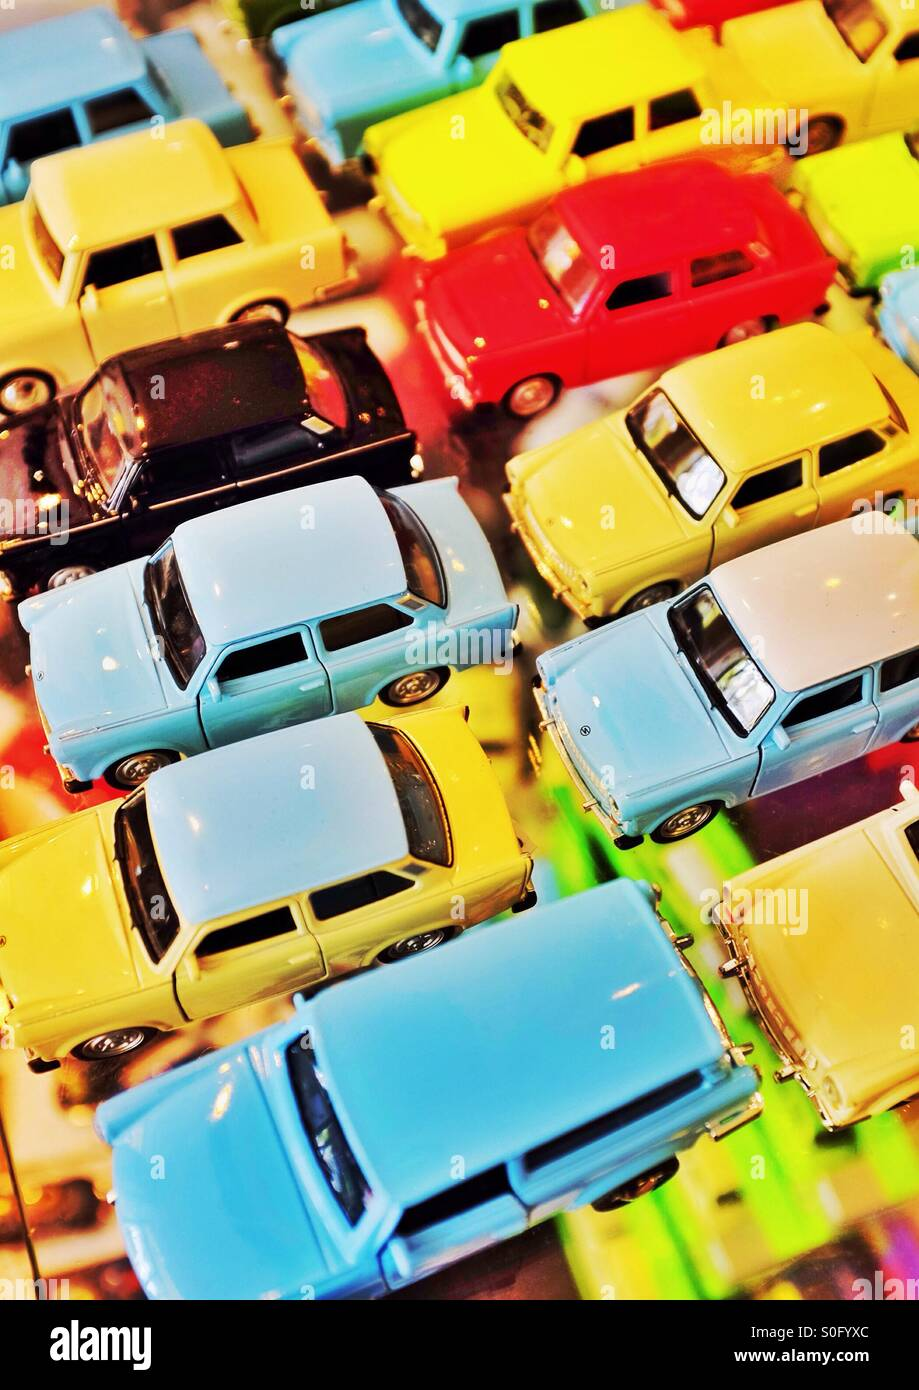 Brightly coloured toy car selection - Stock Image